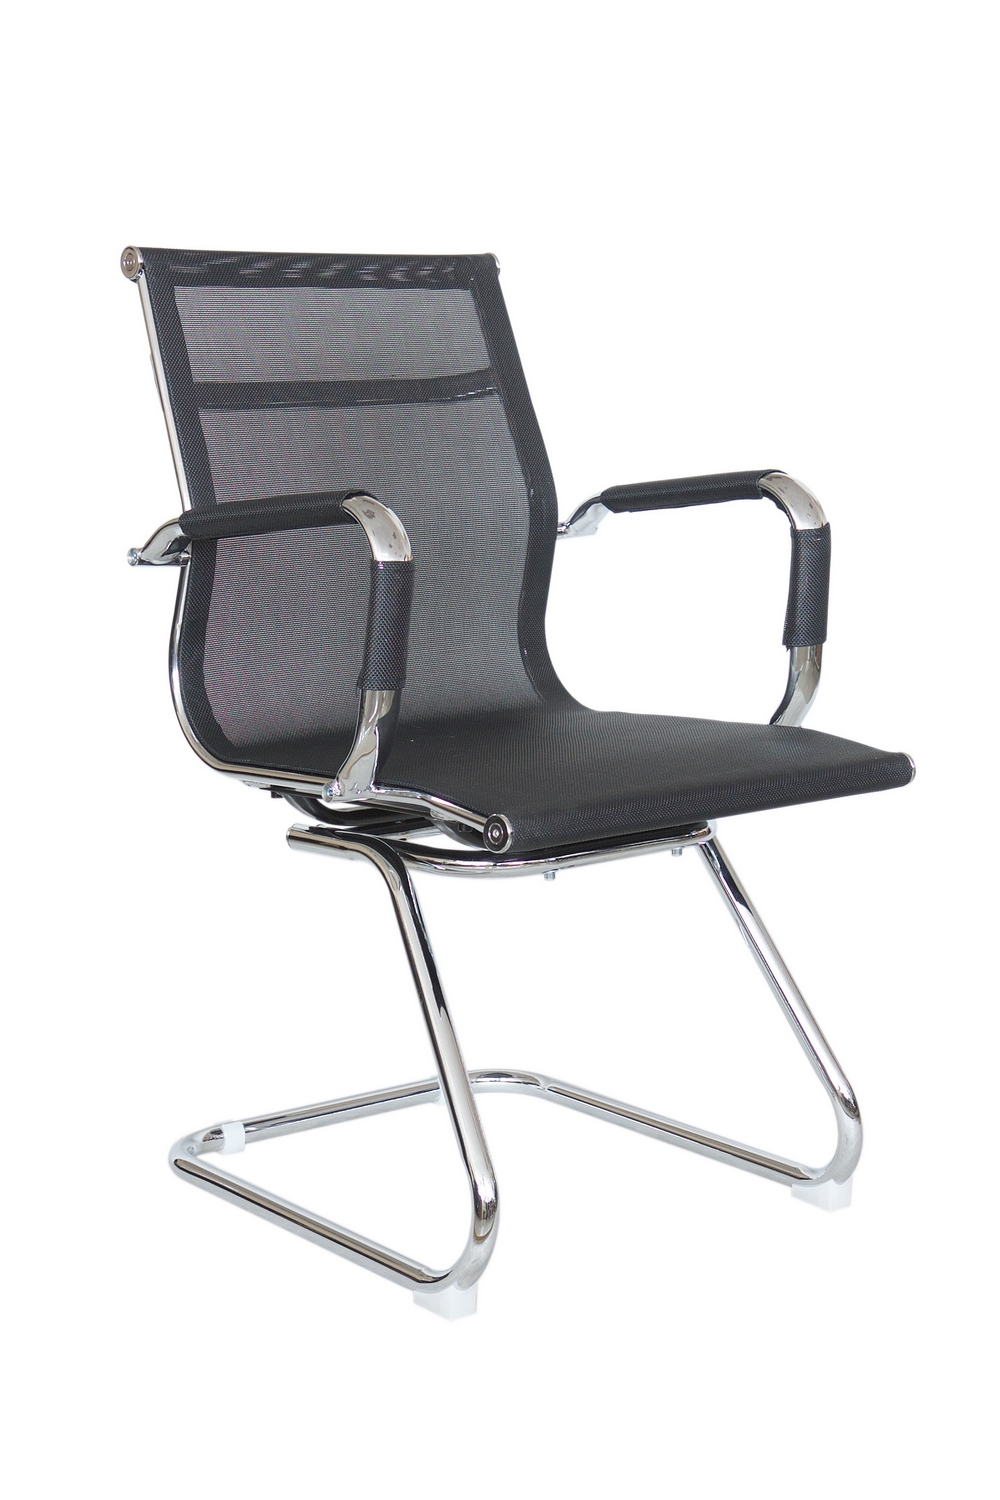 Конференц кресло Riva Chair 6001-3 , чёрная сетка